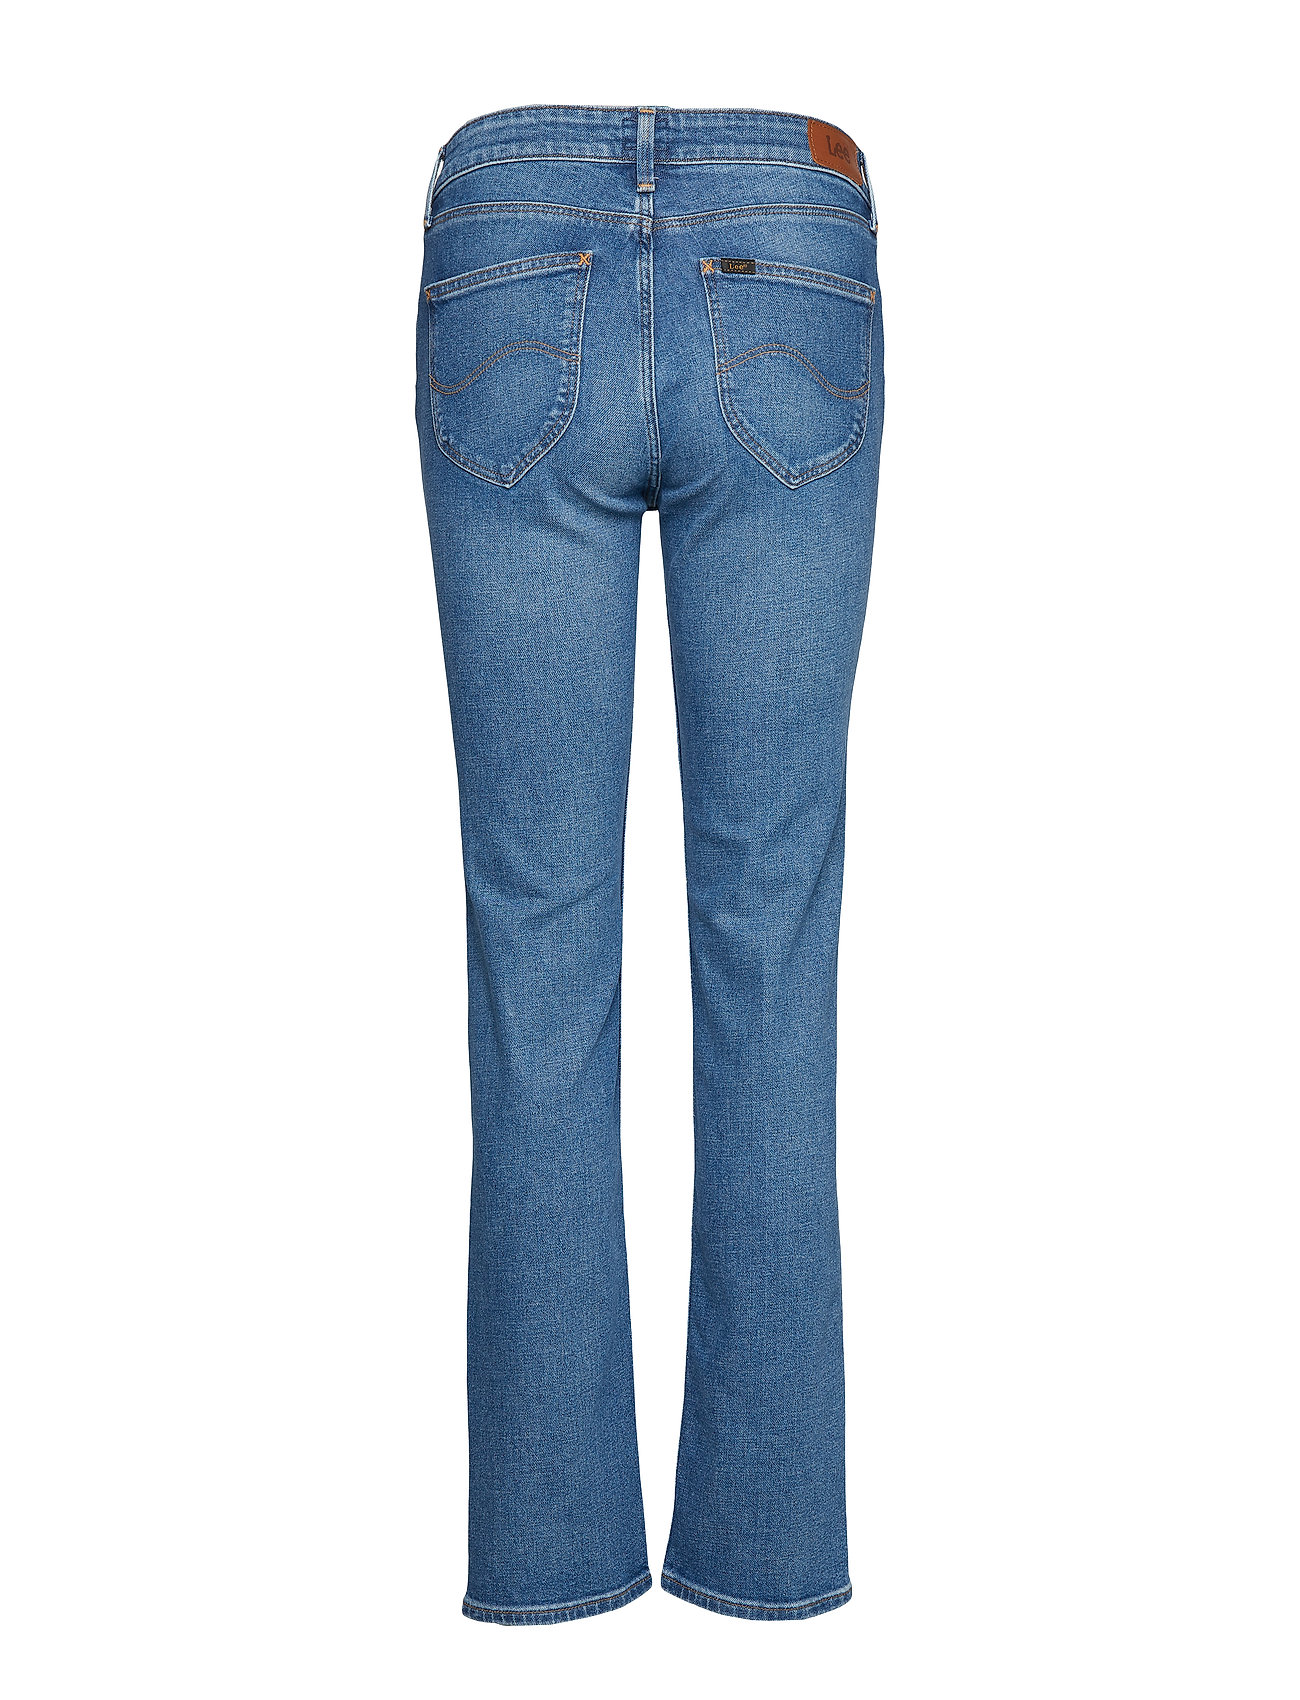 Marion Marion Jeans Straightmid HackettLee Straightmid Marion Jeans HackettLee erCxodBW